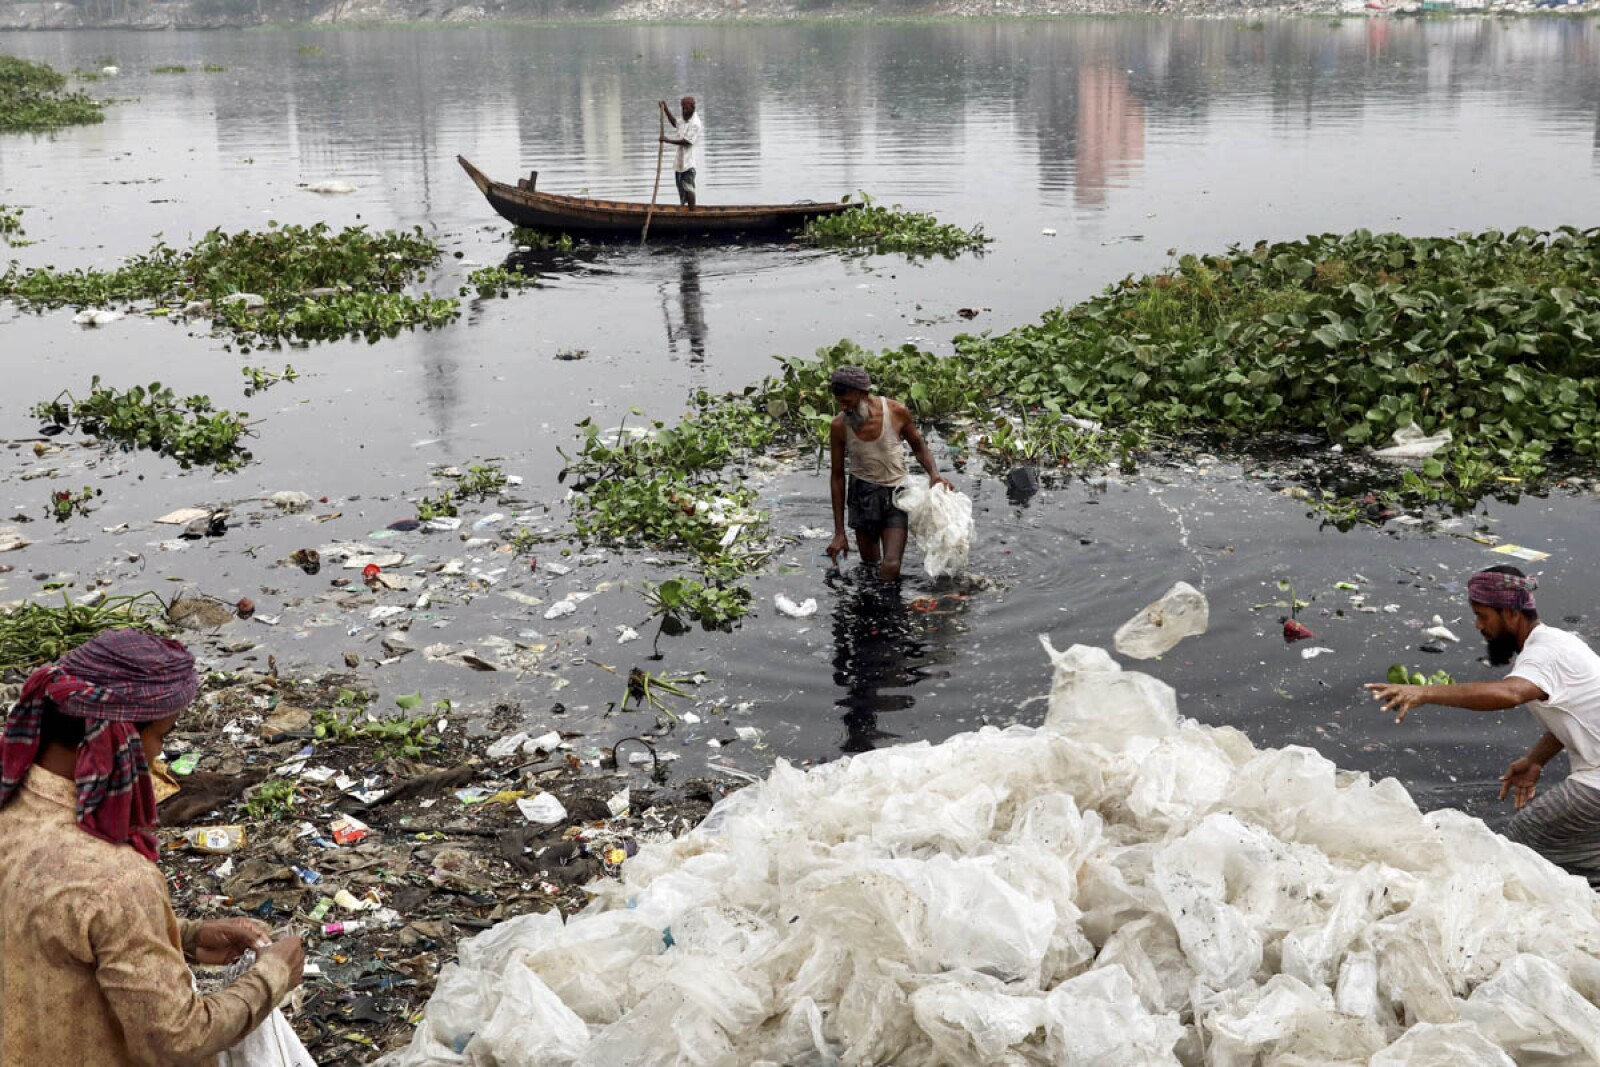 Men wash plastic waste in the waters of the Buriganga river before recycling it, in Dhaka